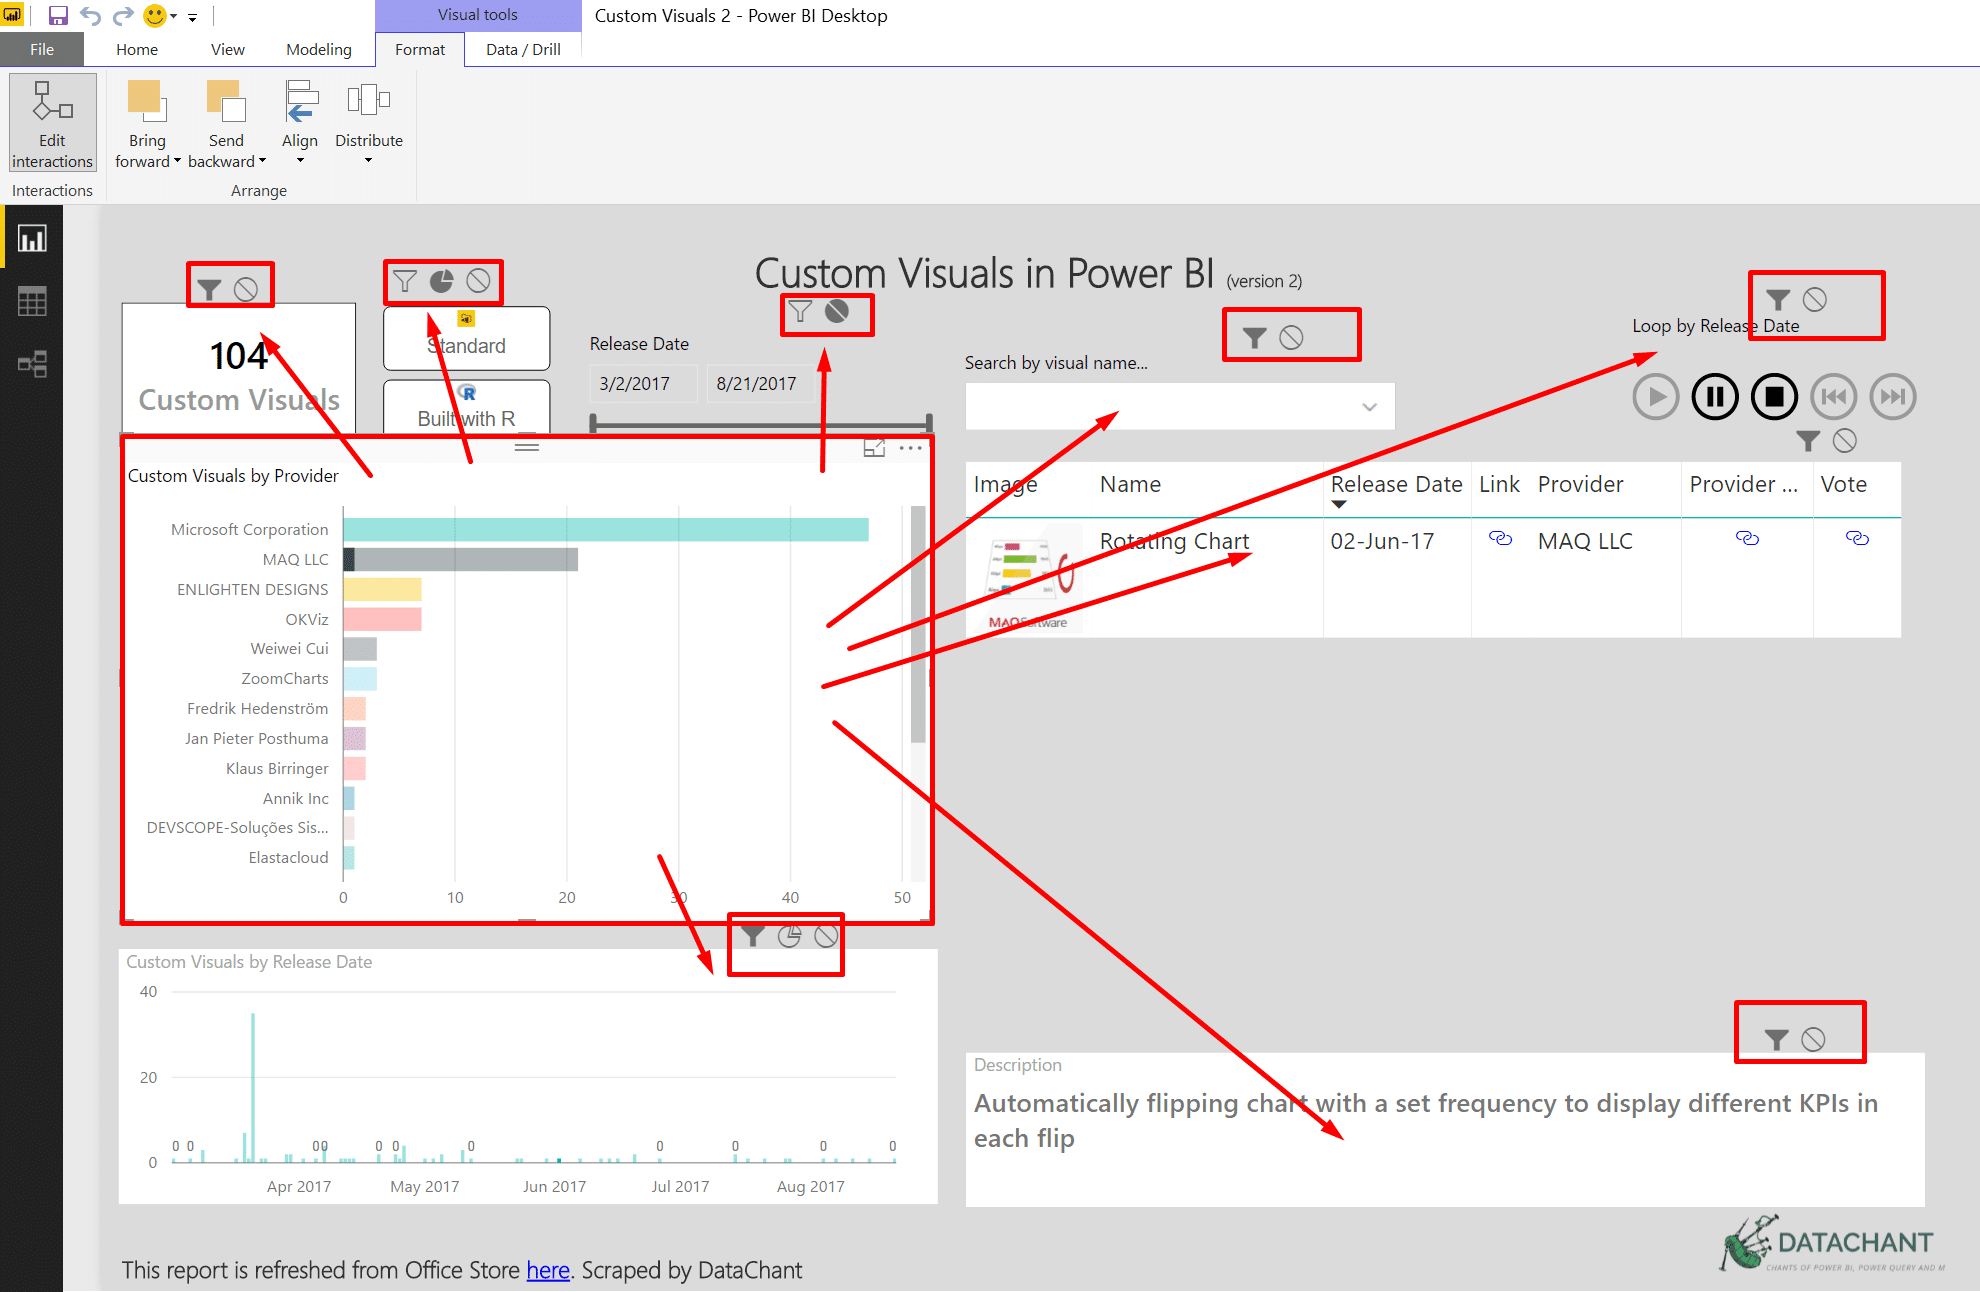 Interactive Visuals in Power BI